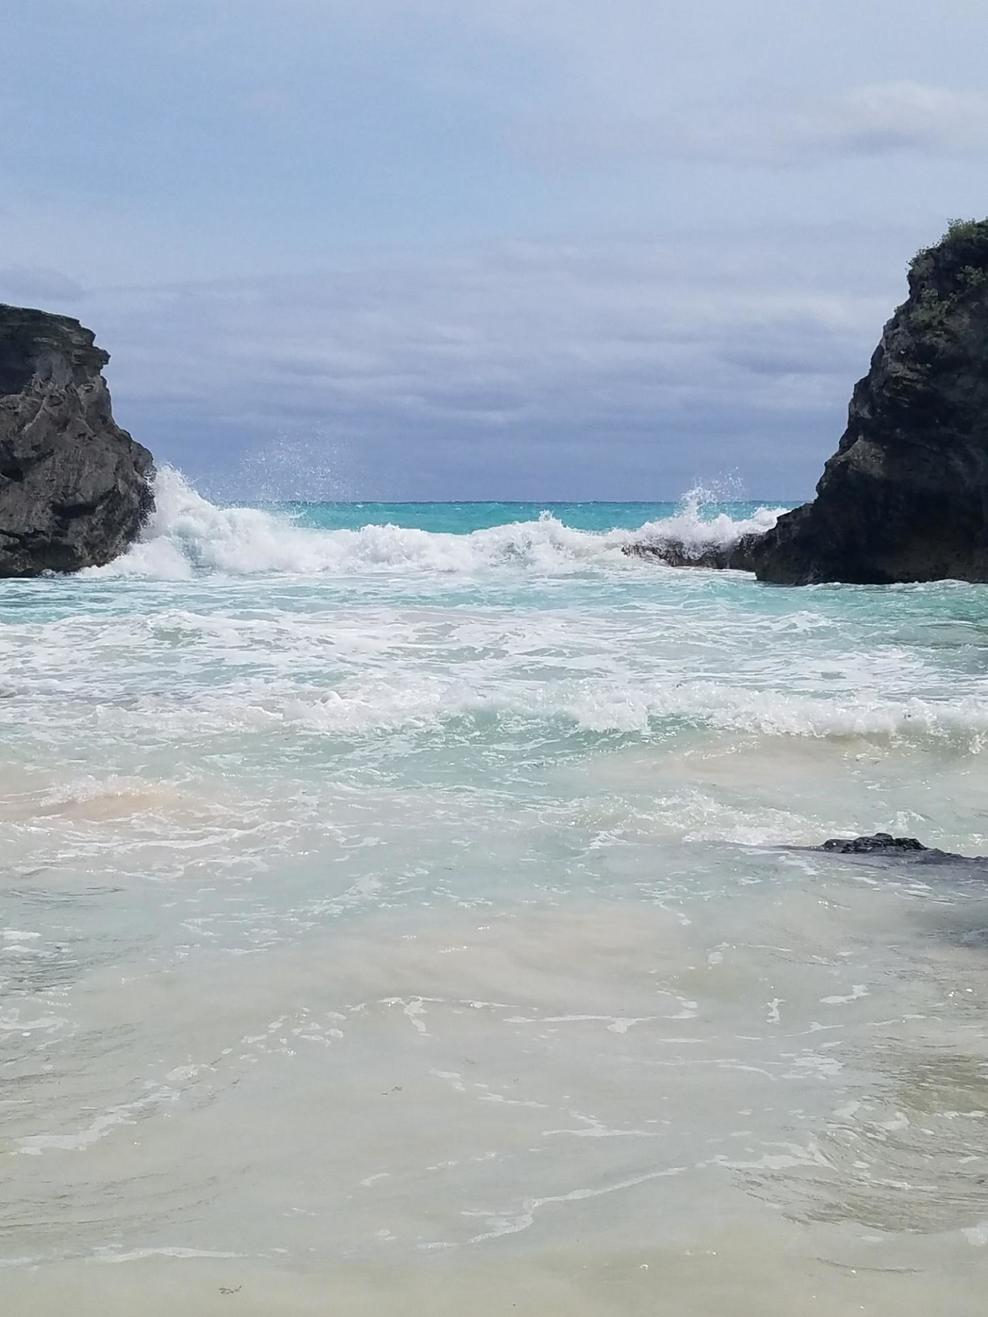 Horshoe Bay Beach secluded spot